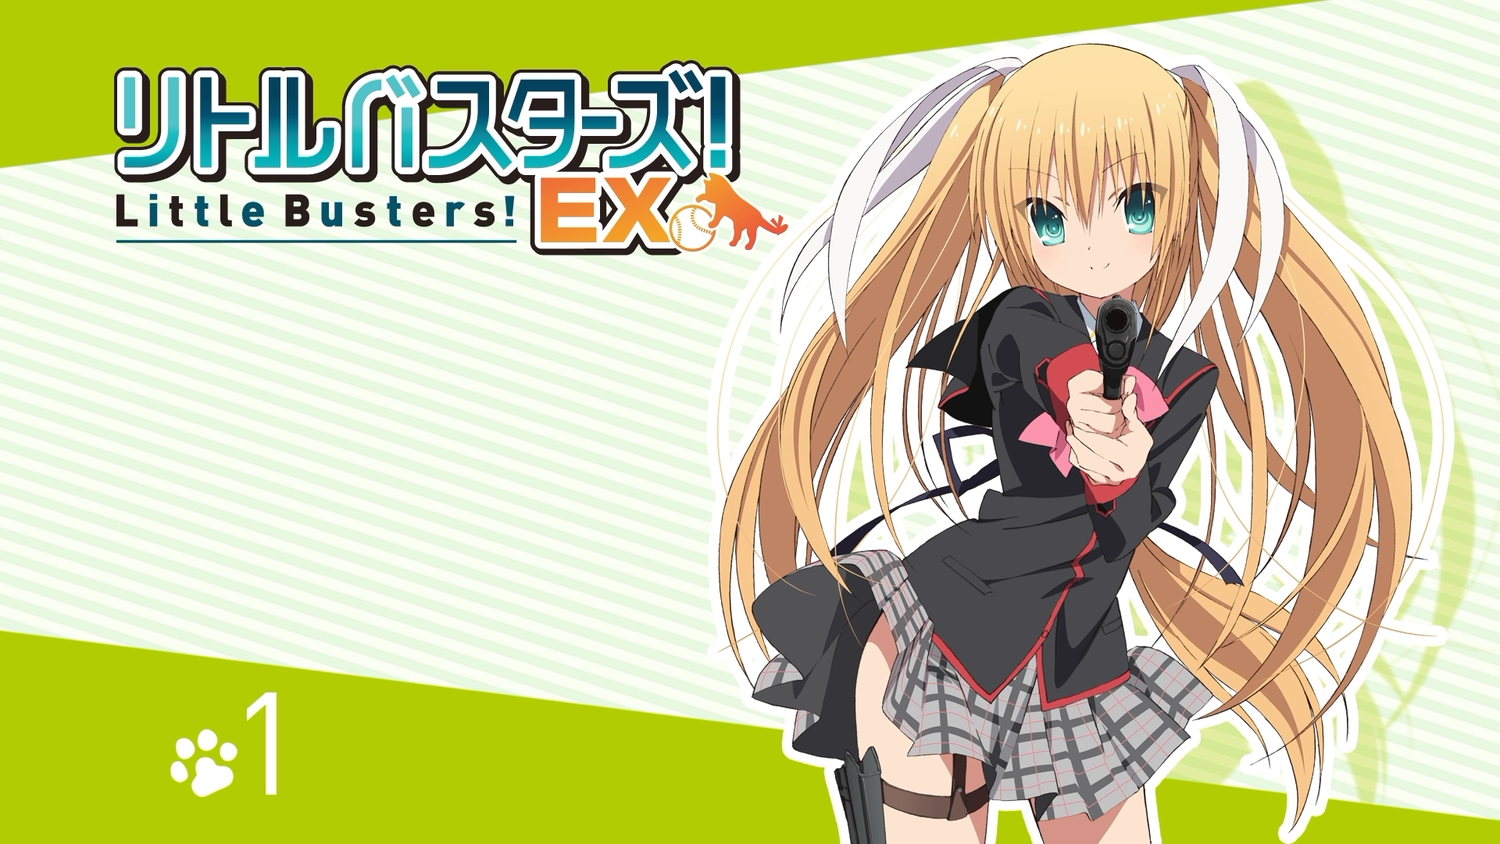 blonde_hair green_eyes gun little_busters! long_hair school_uniform skirt tagme_(artist) tokido_saya weapon